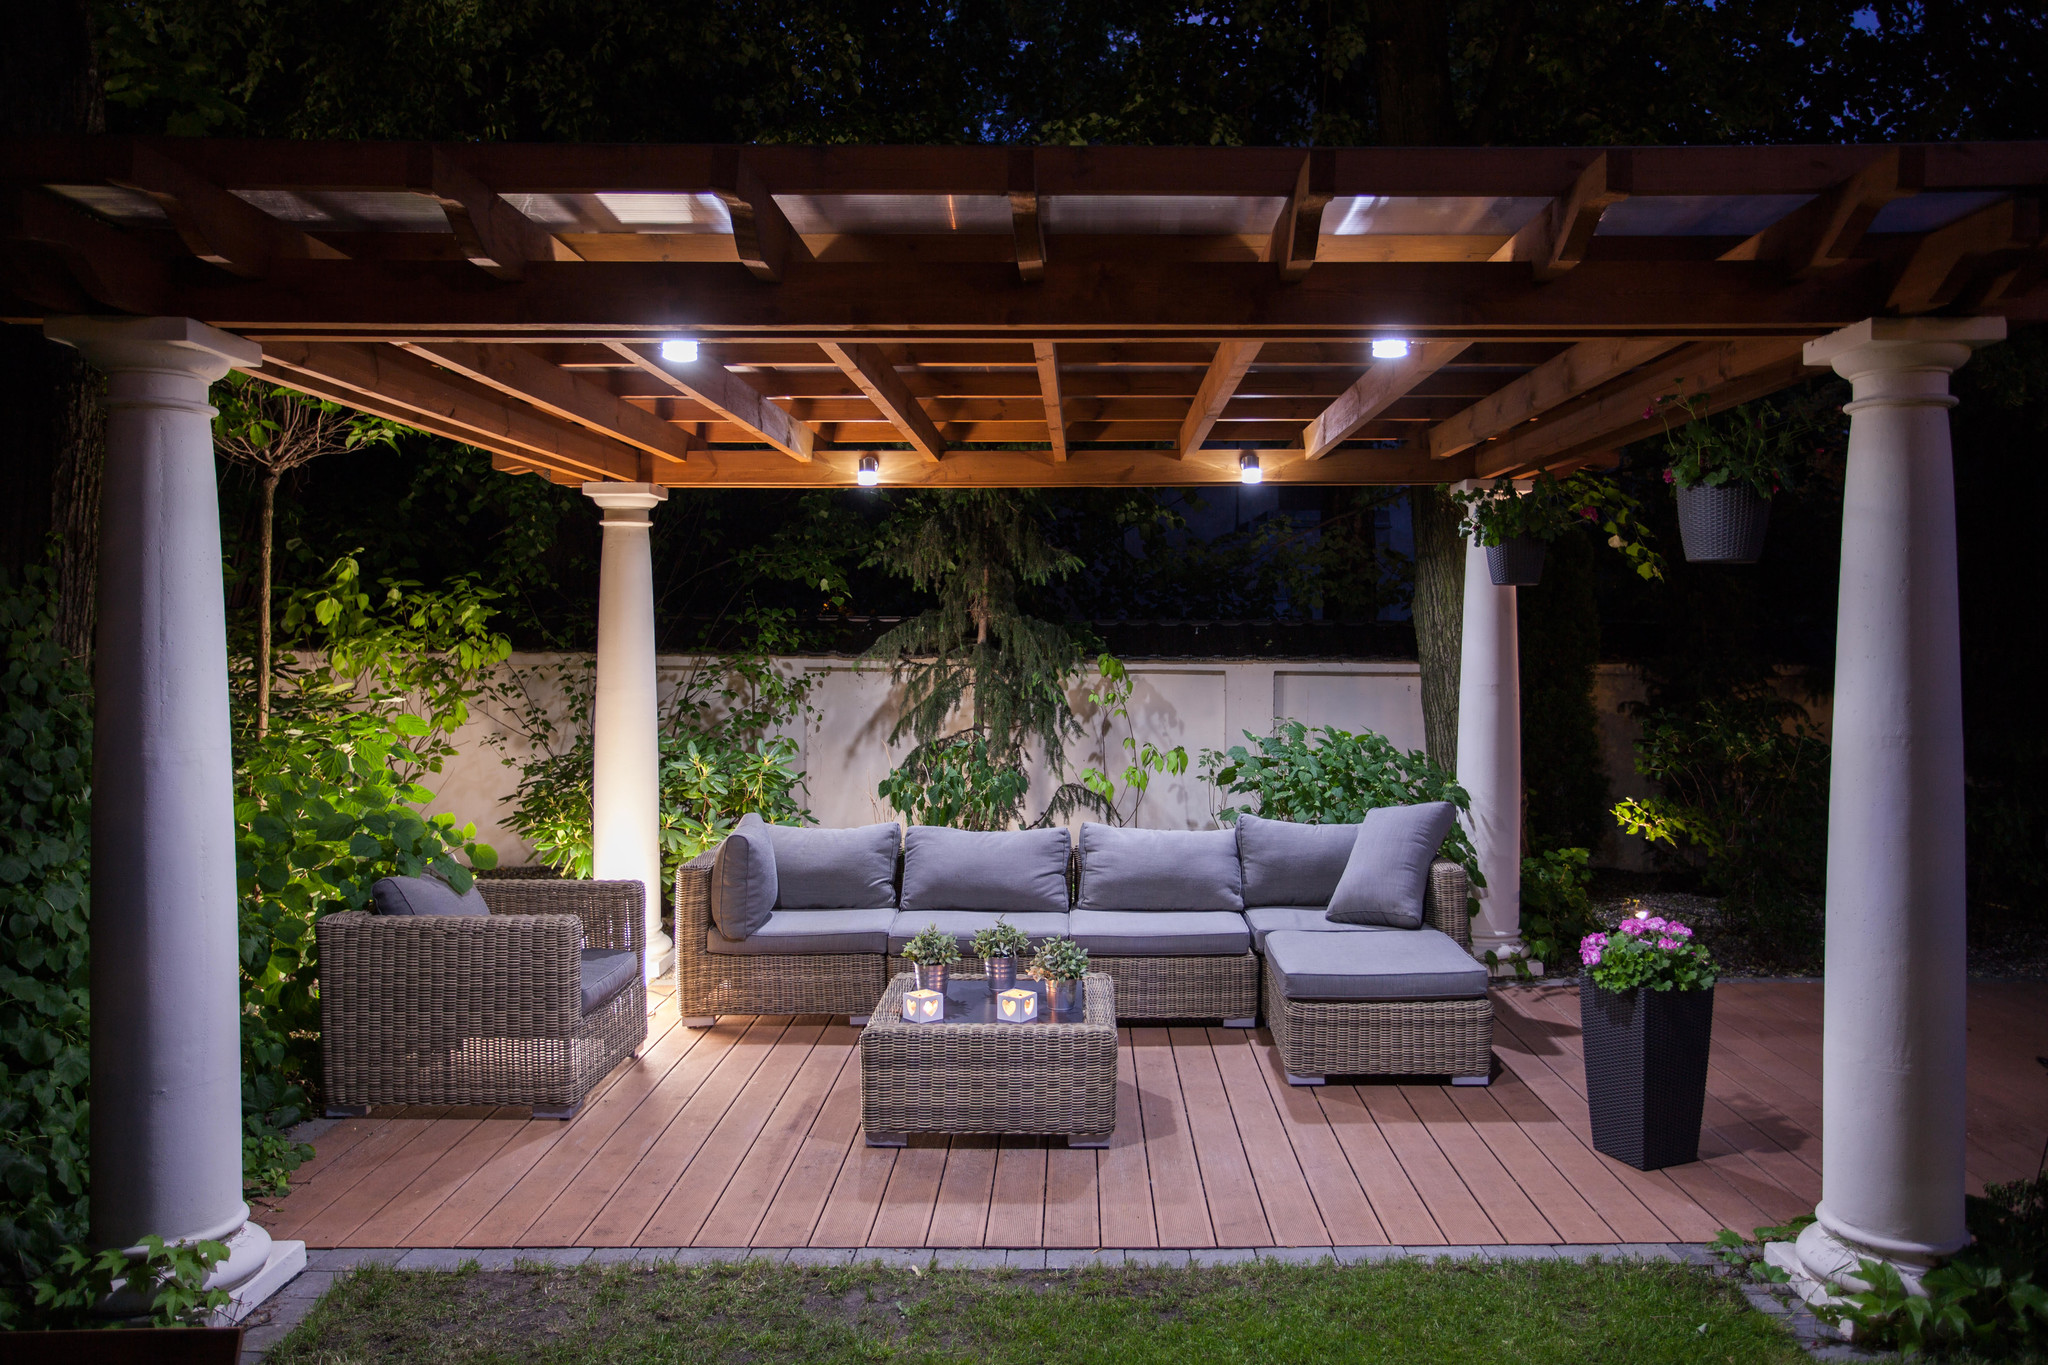 Inspiration: Plants and LED outdoor lighting